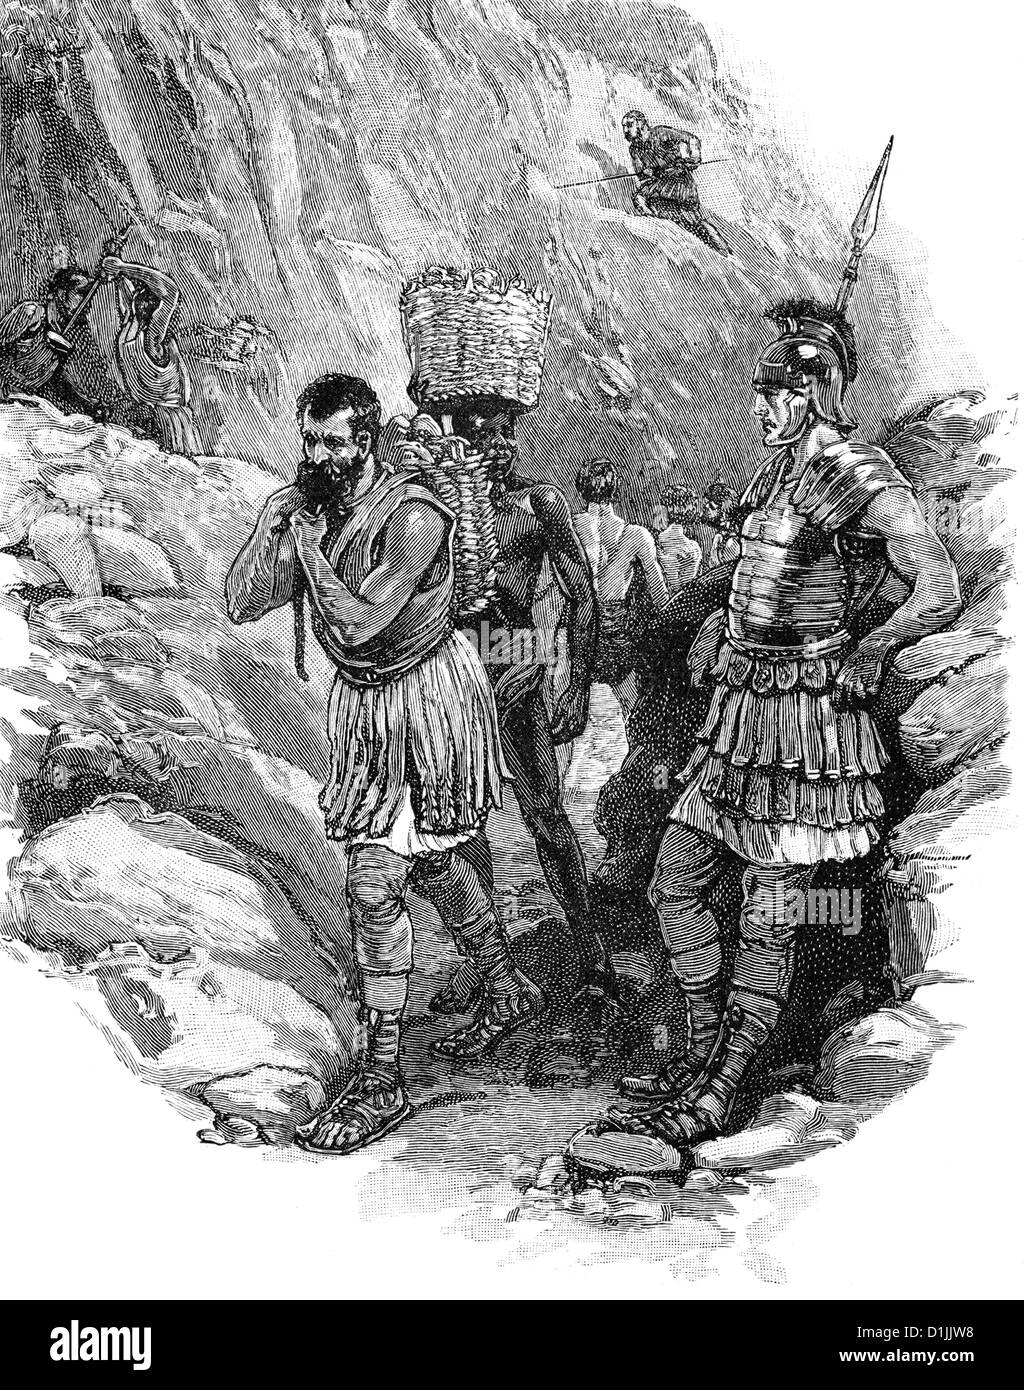 Roman legionary supervising Anglo-Saxon workers in a tin mine in circa 50 AD, - Stock Image